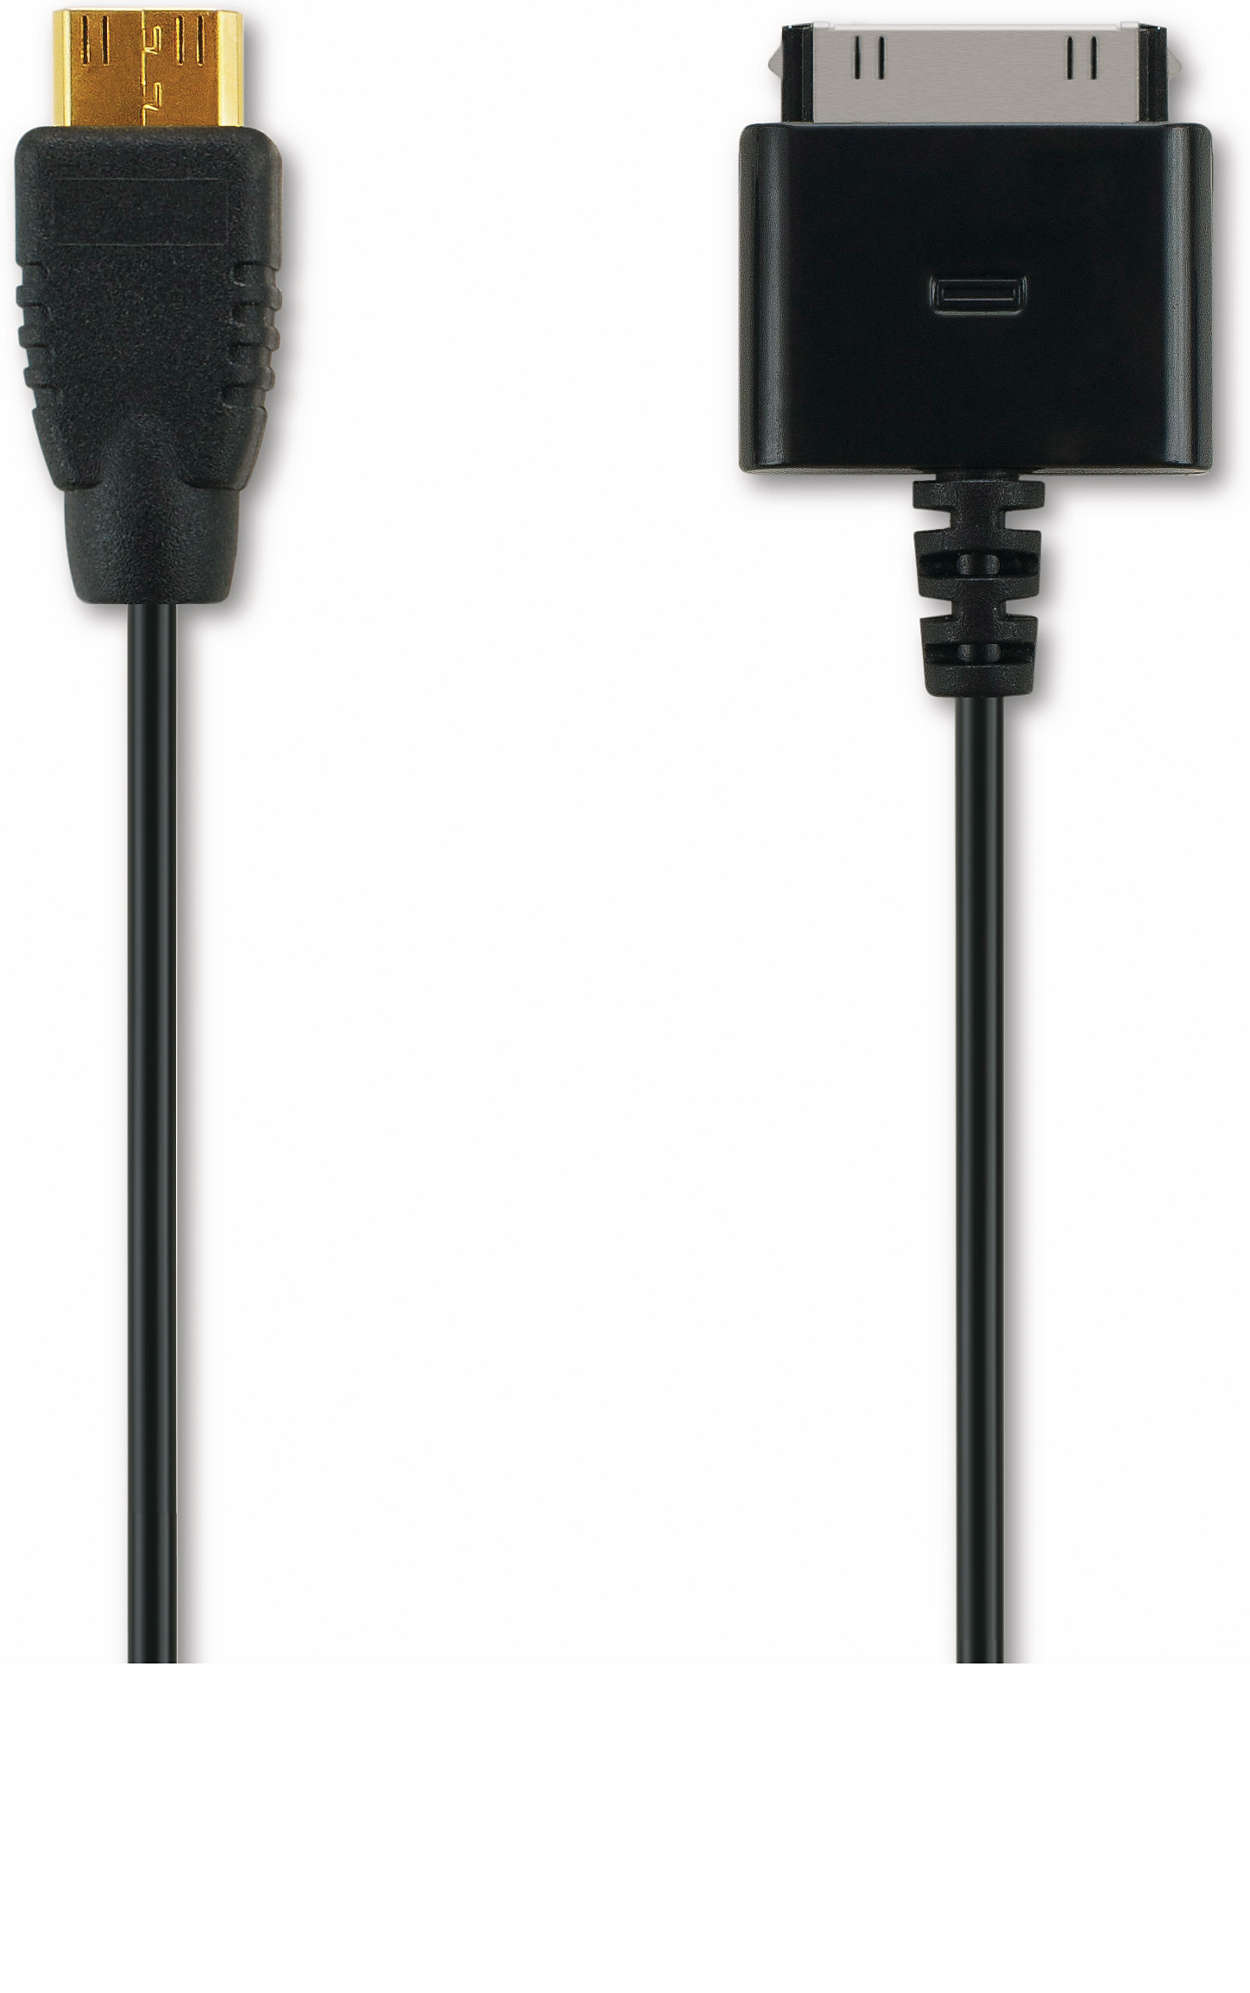 Audio/video cable for iPhone/iPod/iPad